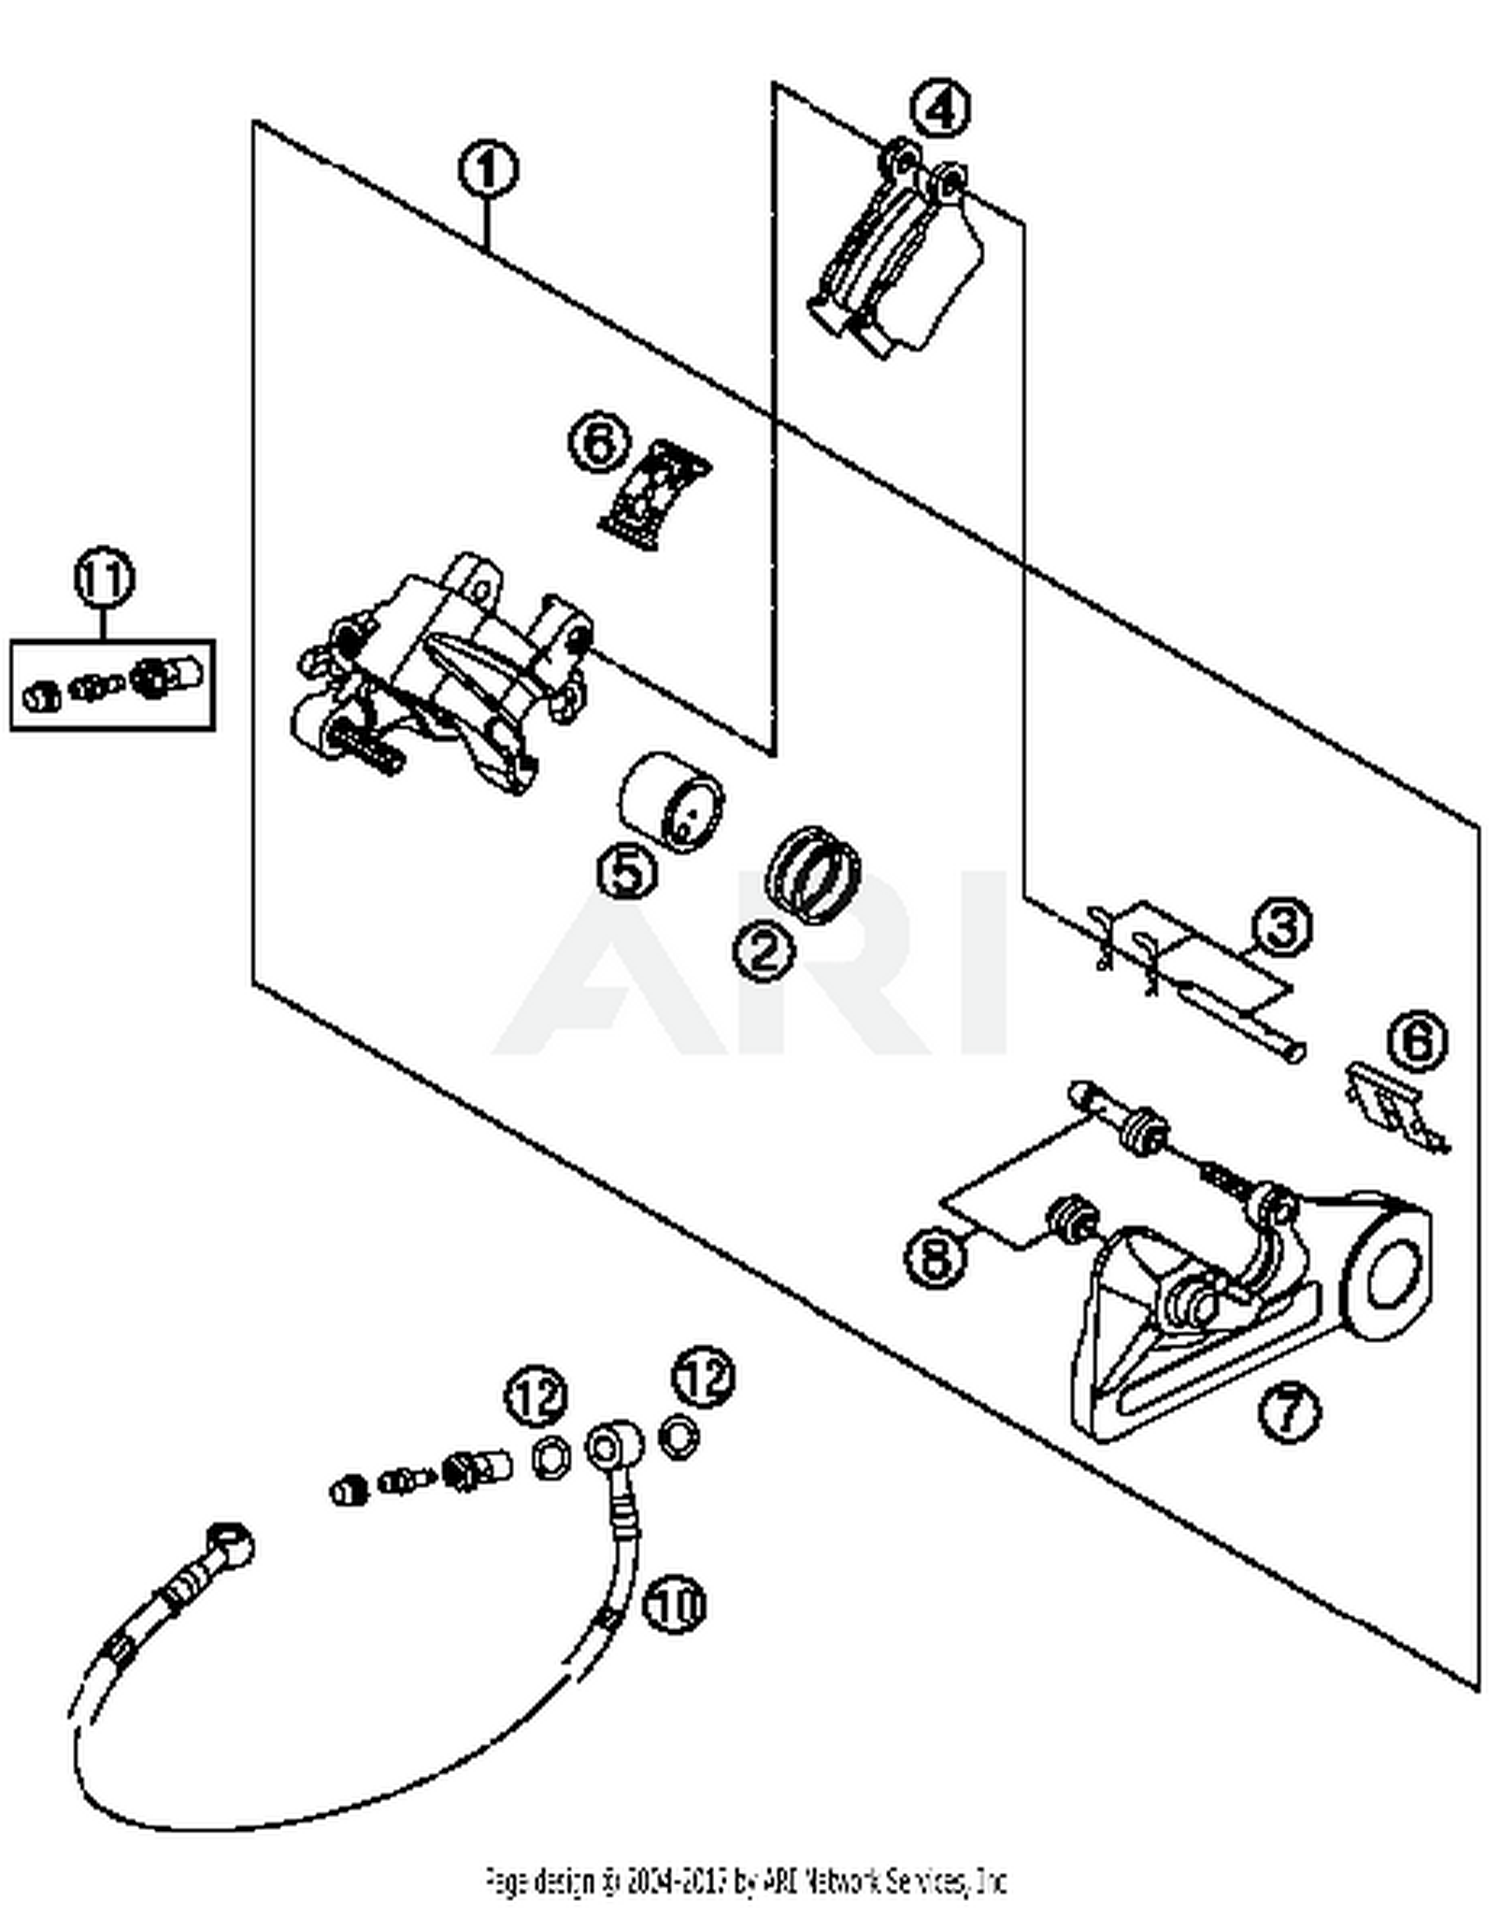 2003 Gmc Sonoma Stereo Wiring Diagram Wiring Diagram FULL